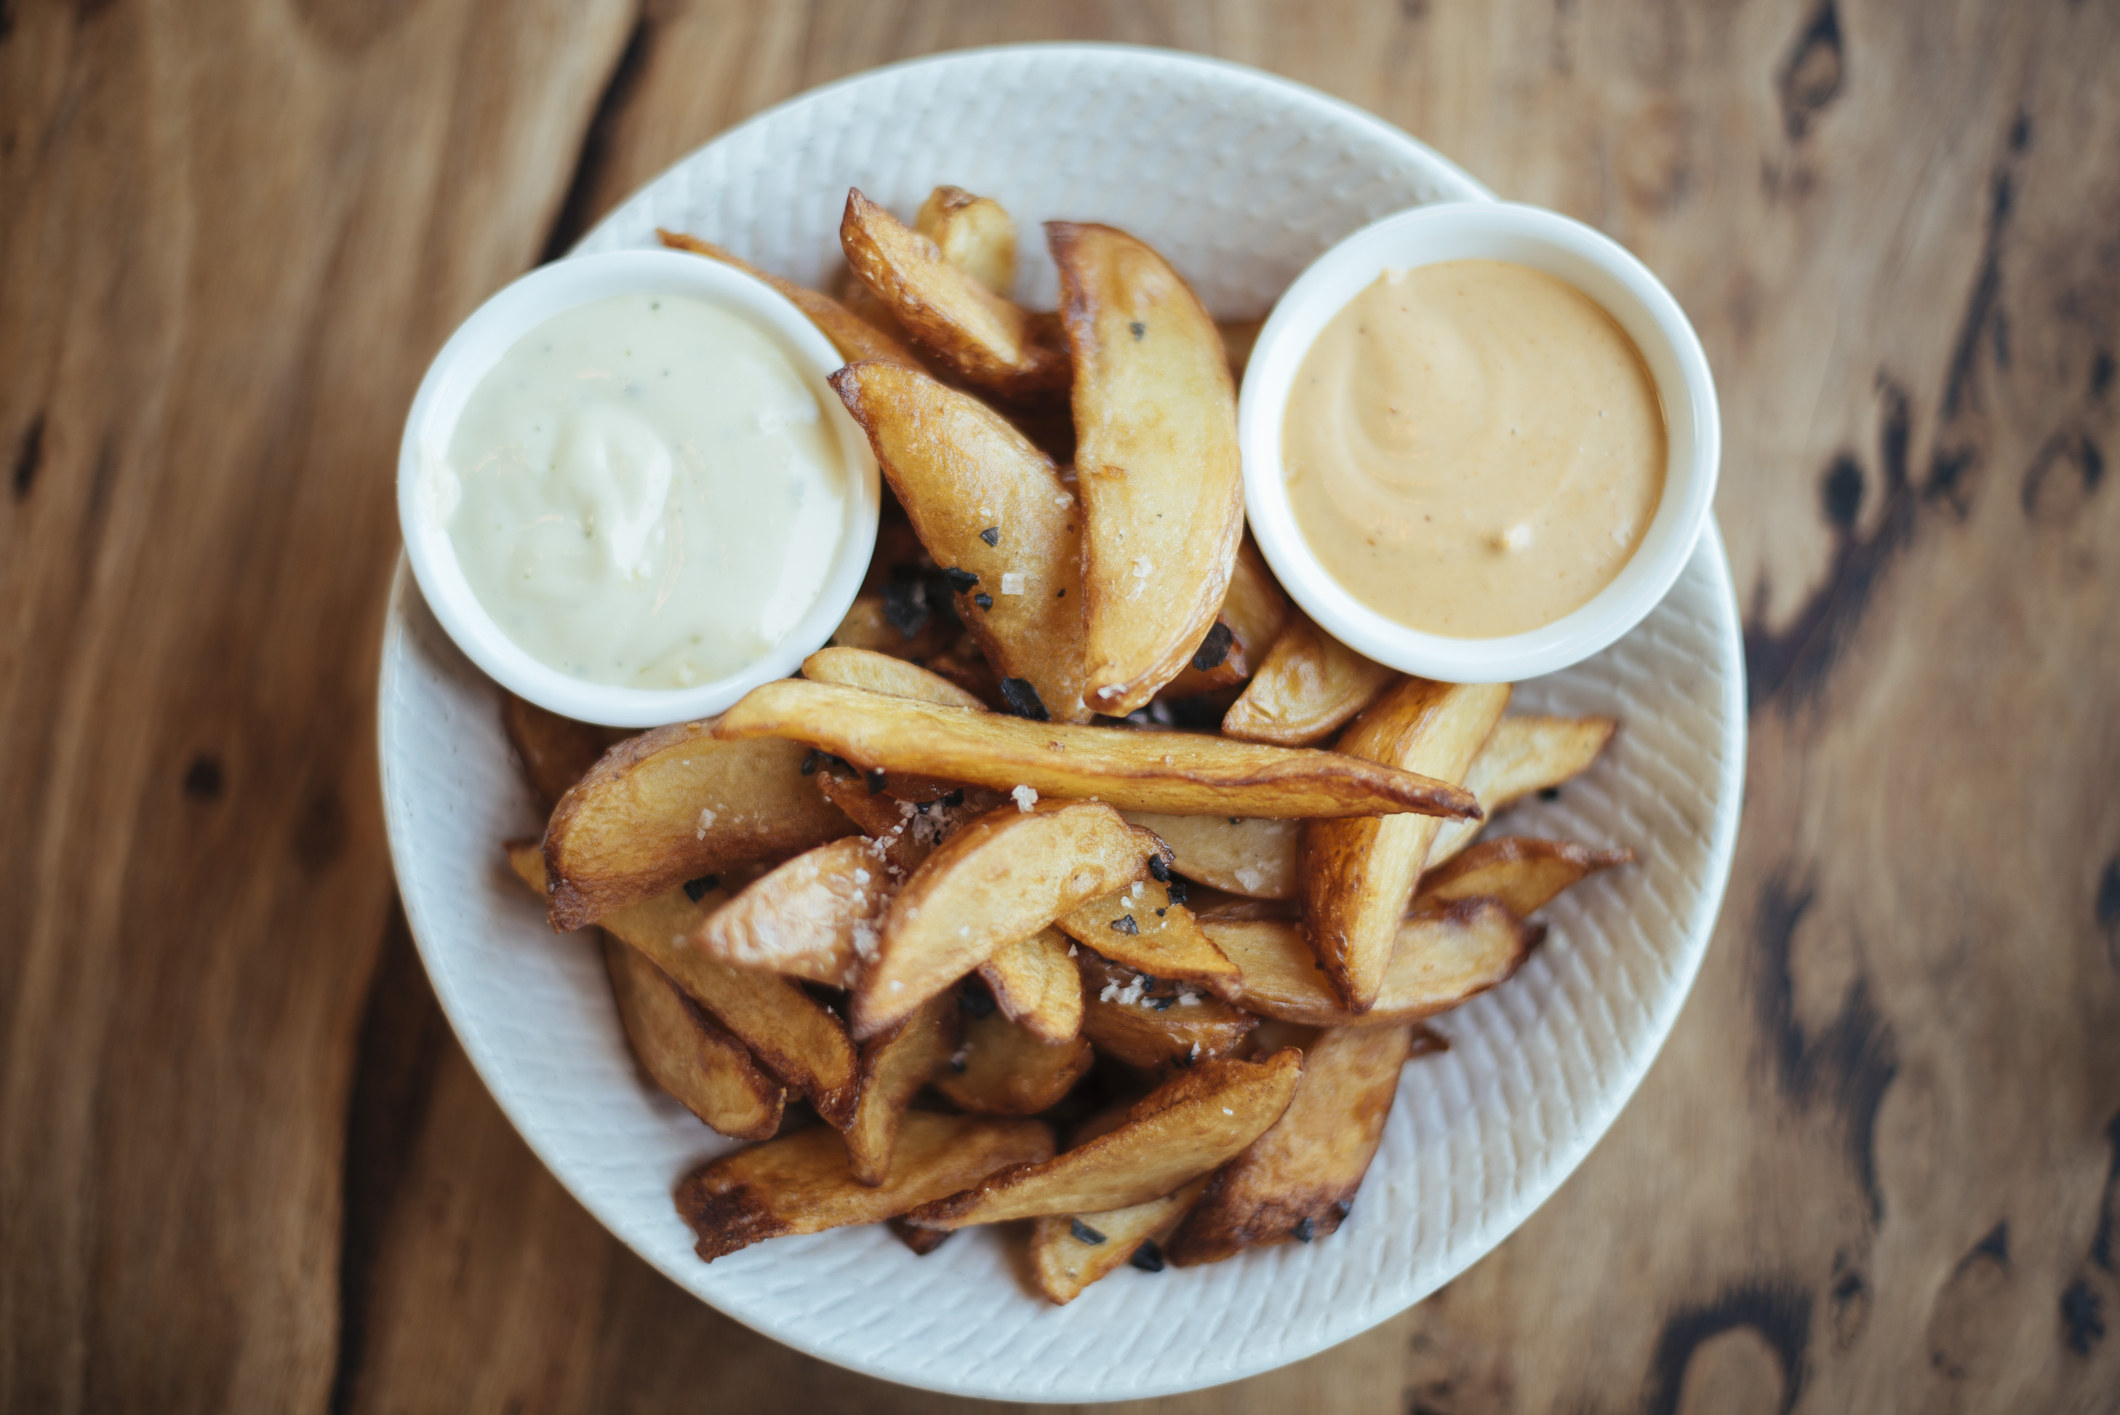 Potato wedges with fry sauce.